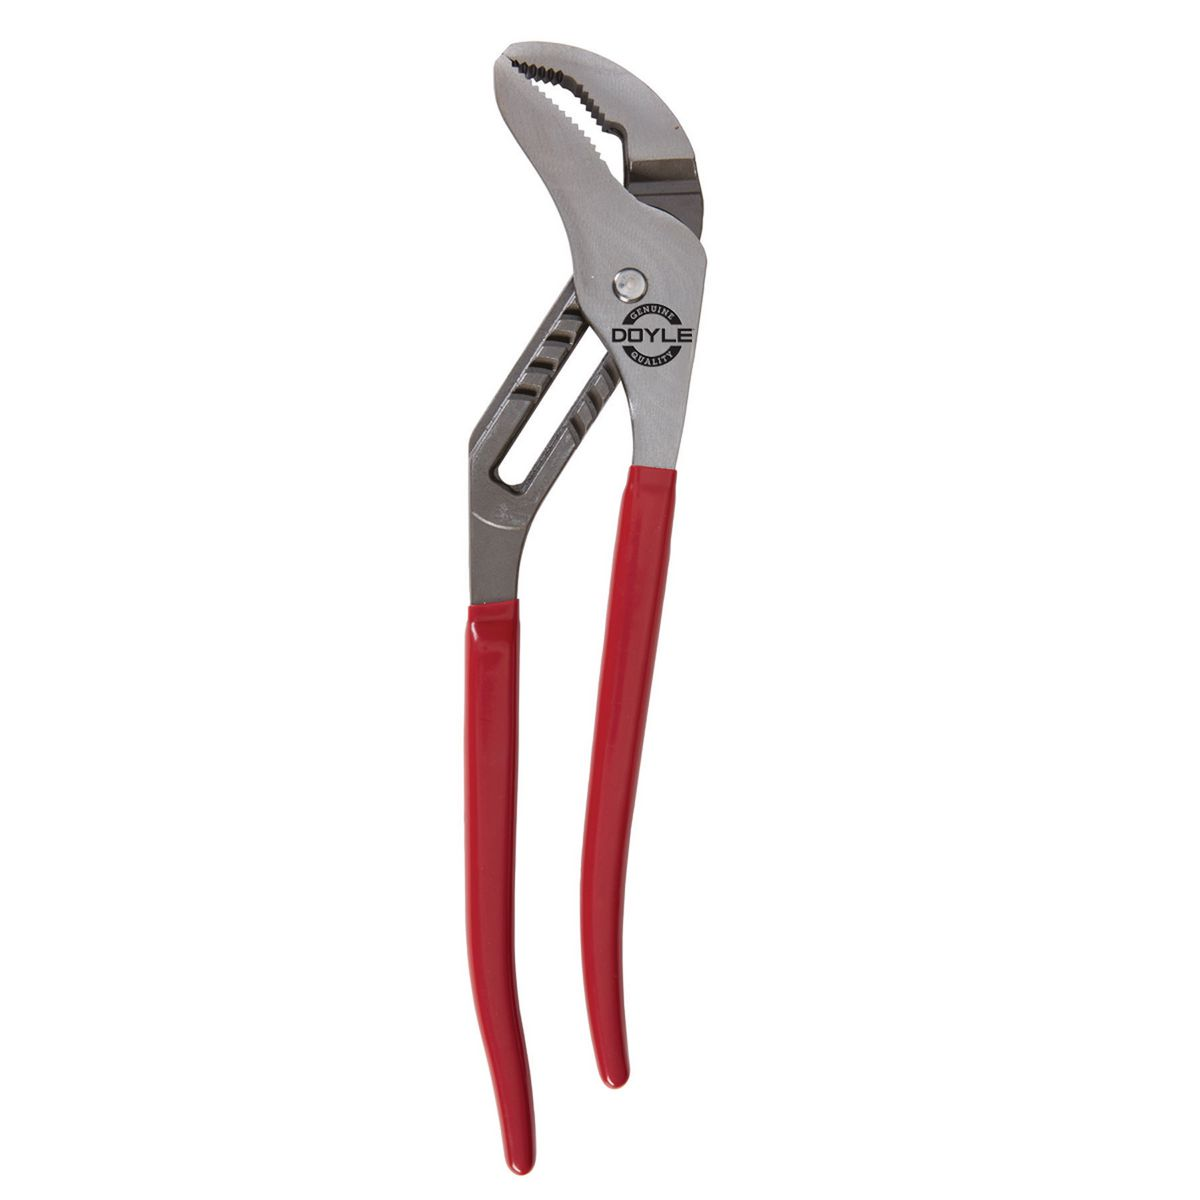 sc 1 st  Harbor Freight & 16 in. High Performance V-Jaw Groove Joint Pliers